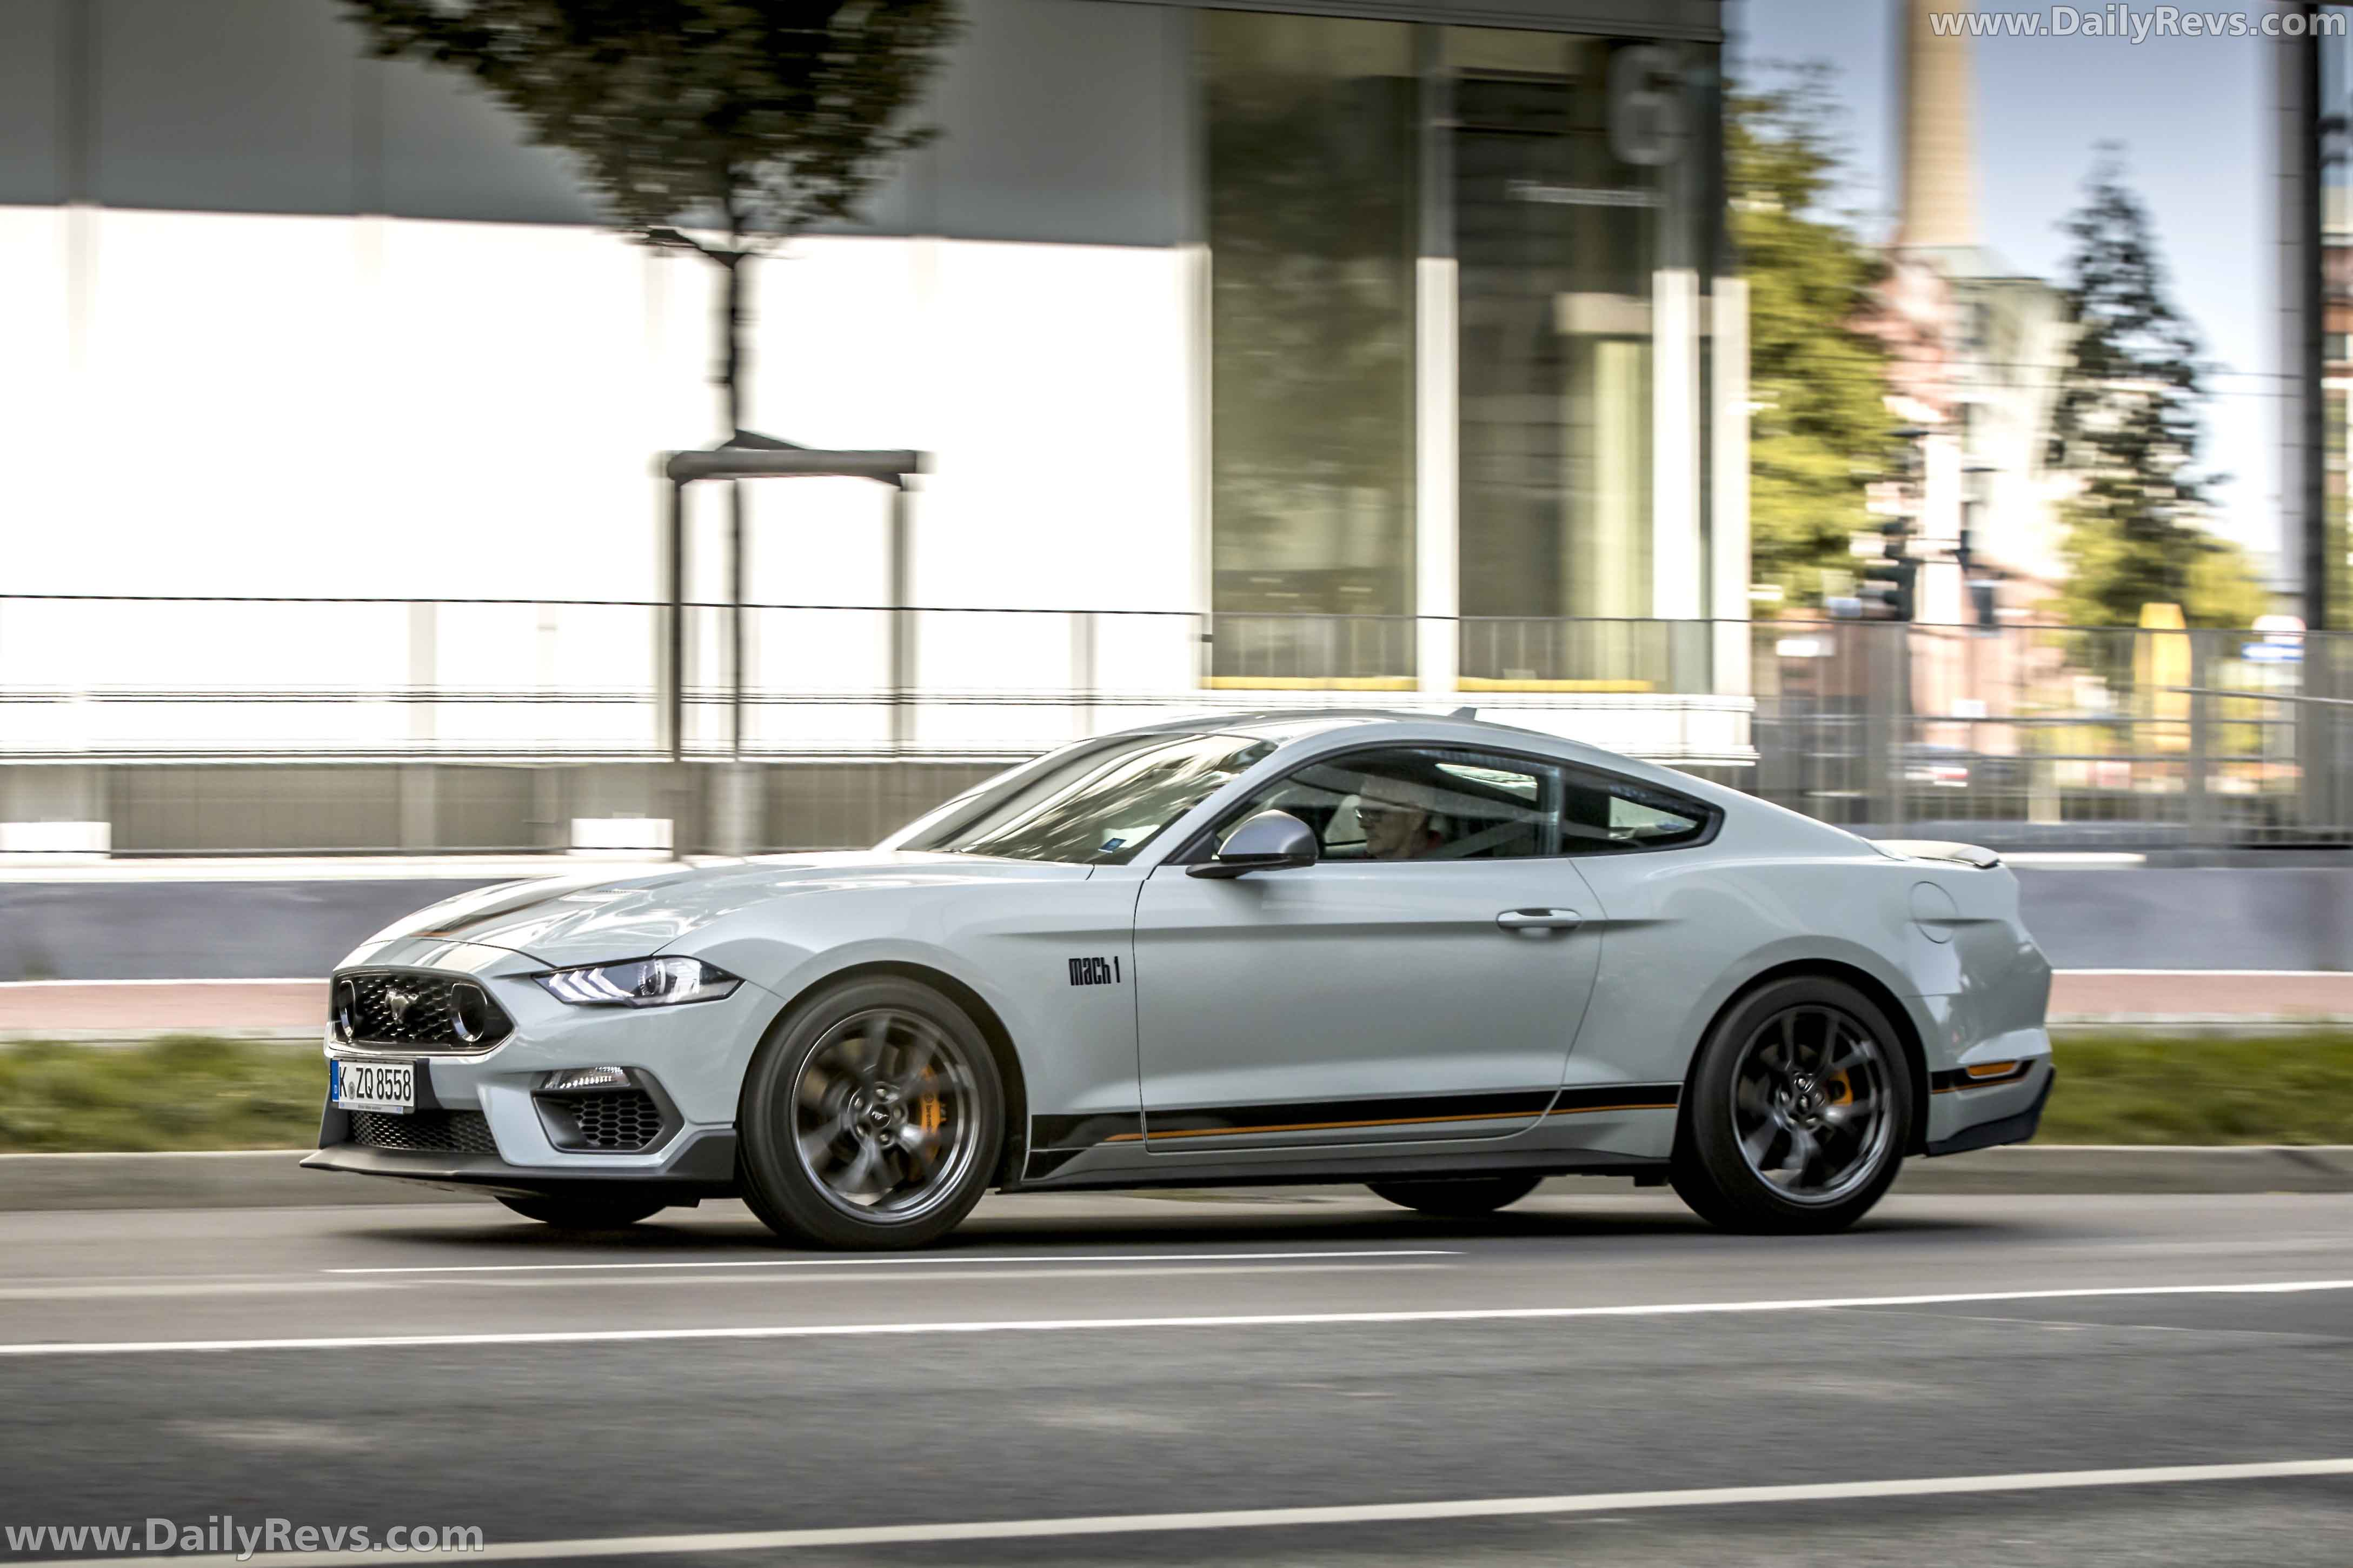 2021 Ford Mustang Mach 1 Order